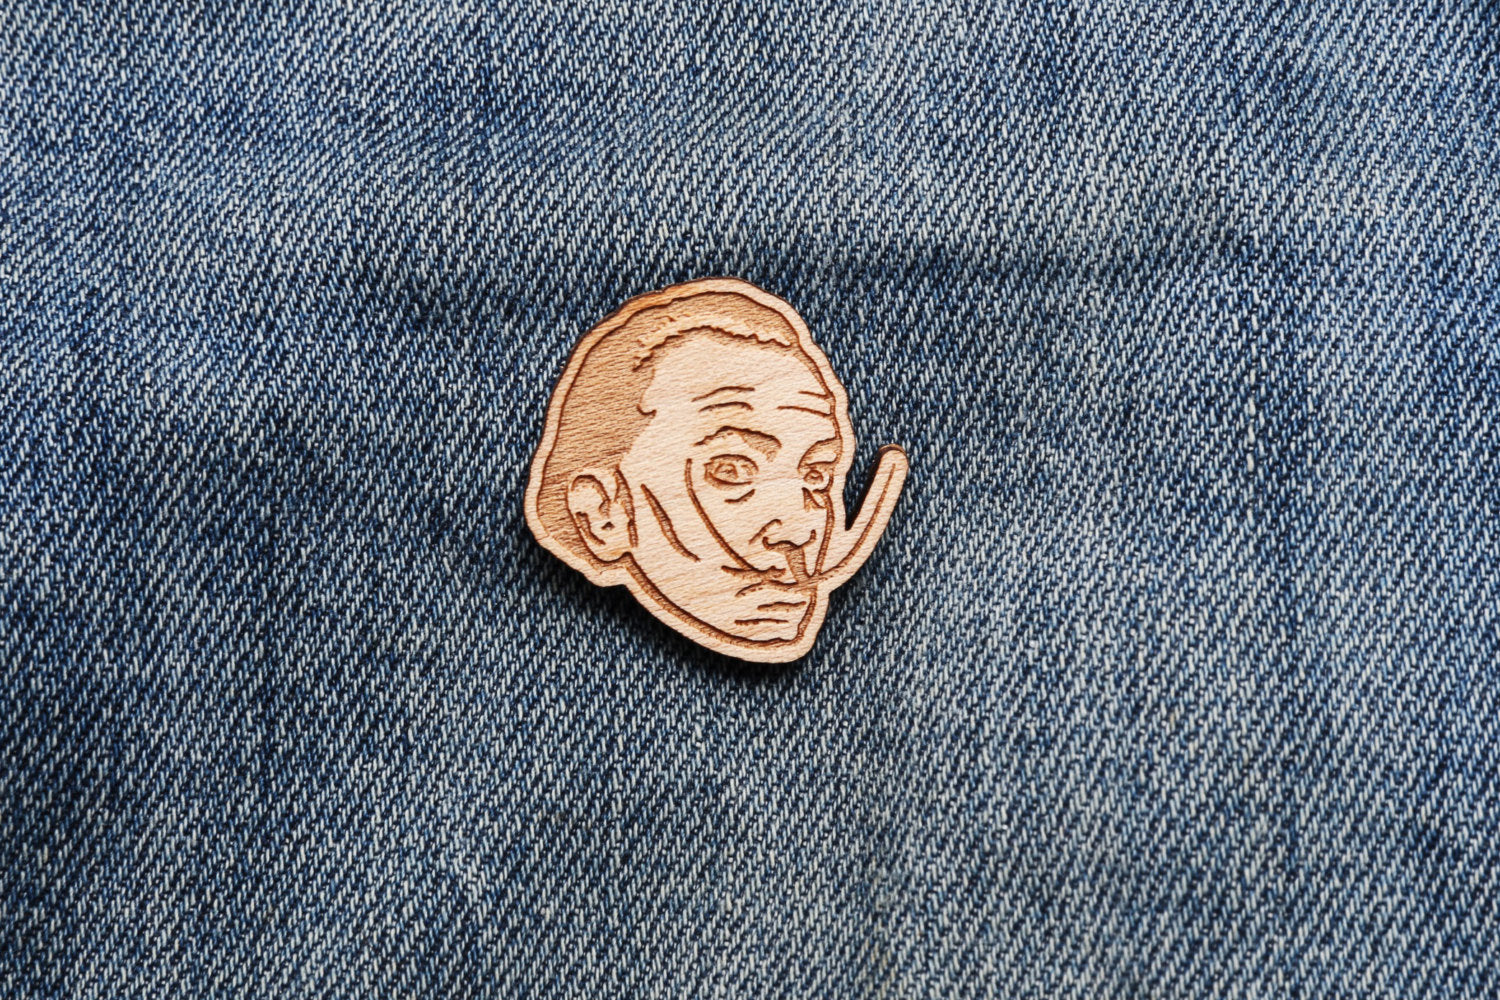 SALVADOR DALI LAPEL PIN